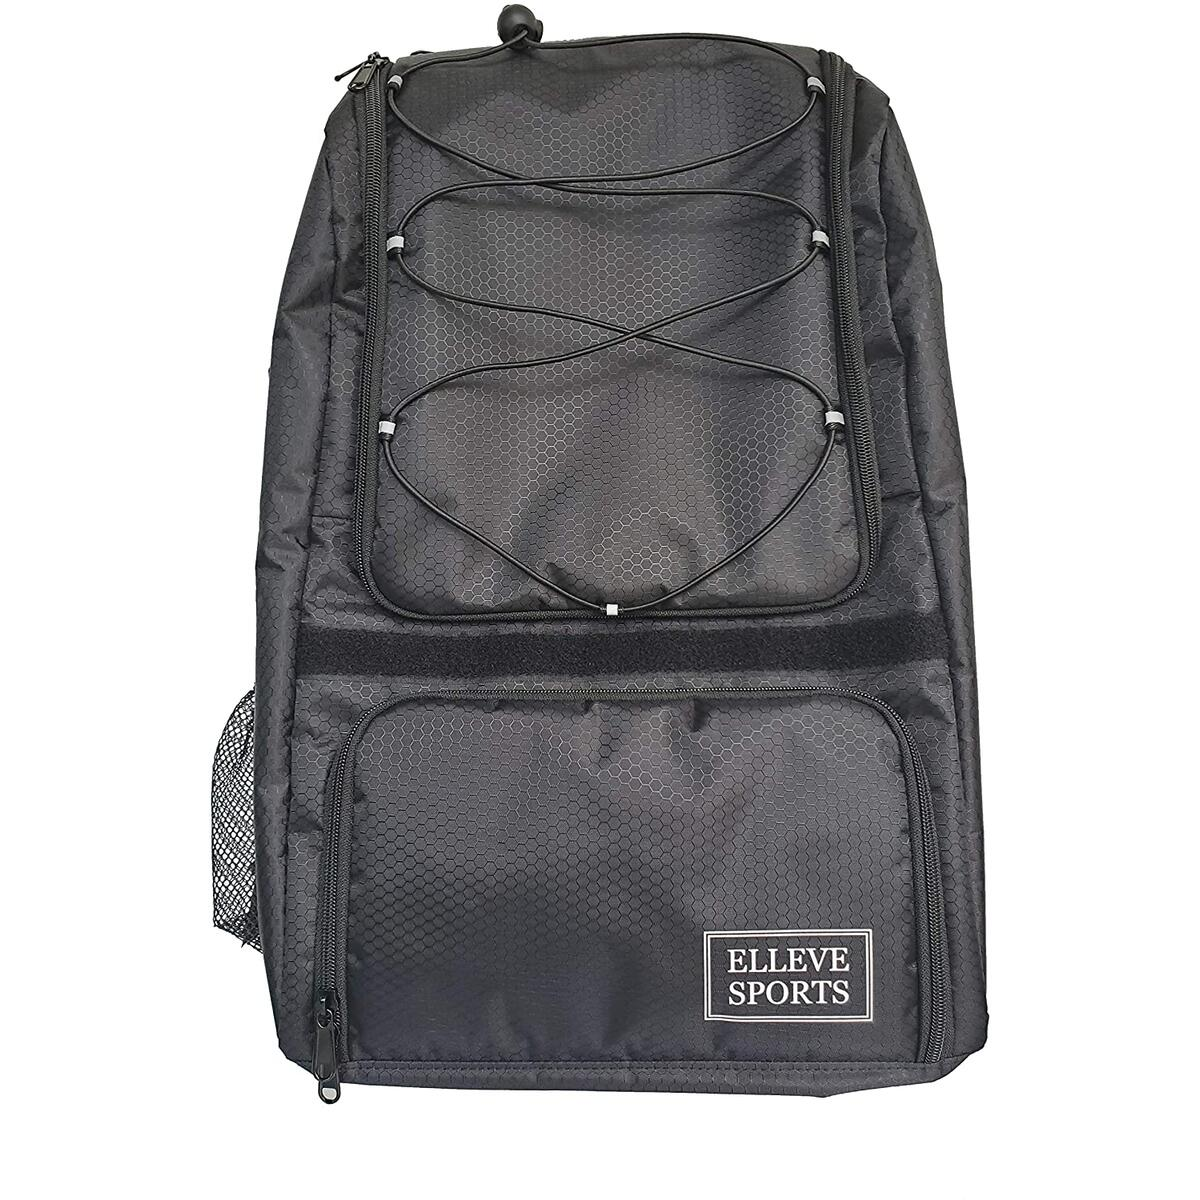 Elleve Sports Black GAME READY Youth & Adults Bat & Equipment Backpack Bag 2020